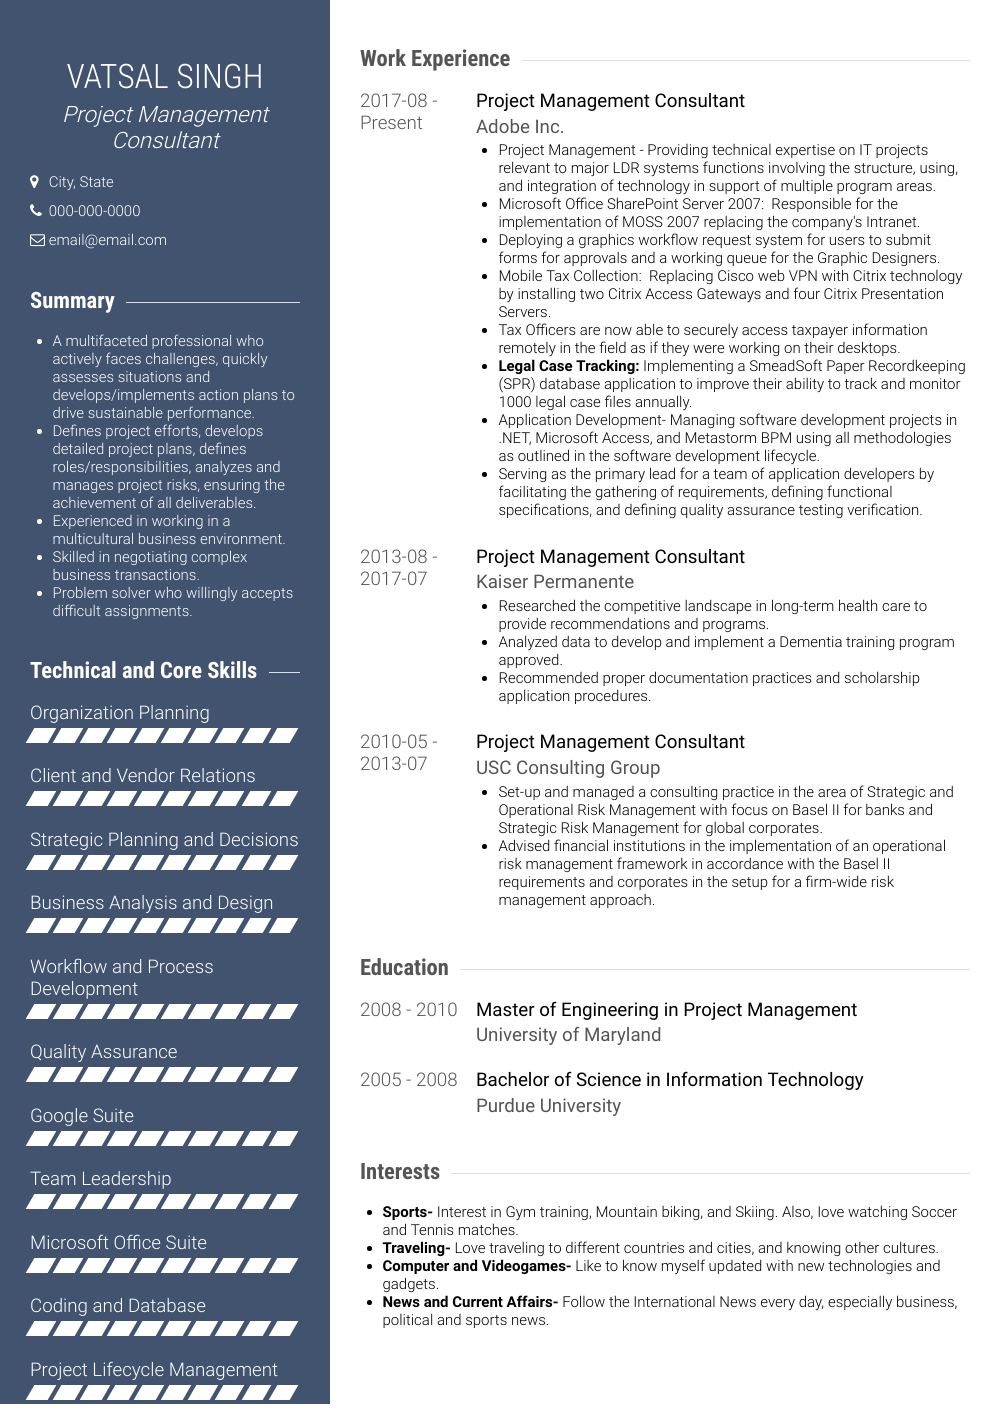 Project Management Consultant Resume Sample and Template